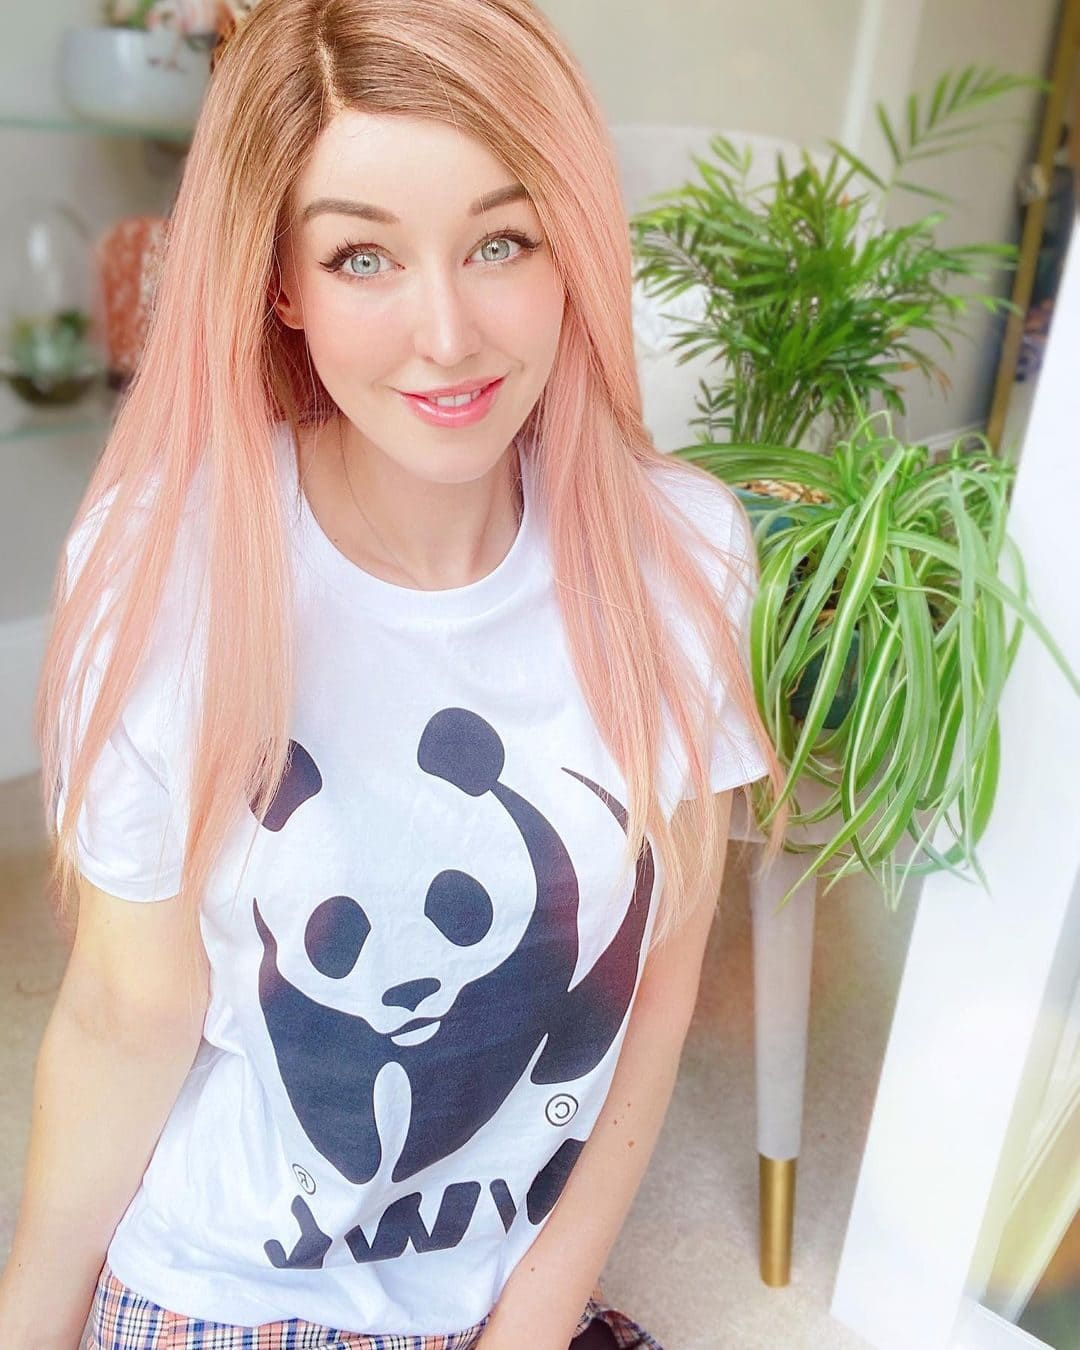 Clare Siobhan (YouTuber) Wiki, Age, Boyfriends, Net Worth & More 3